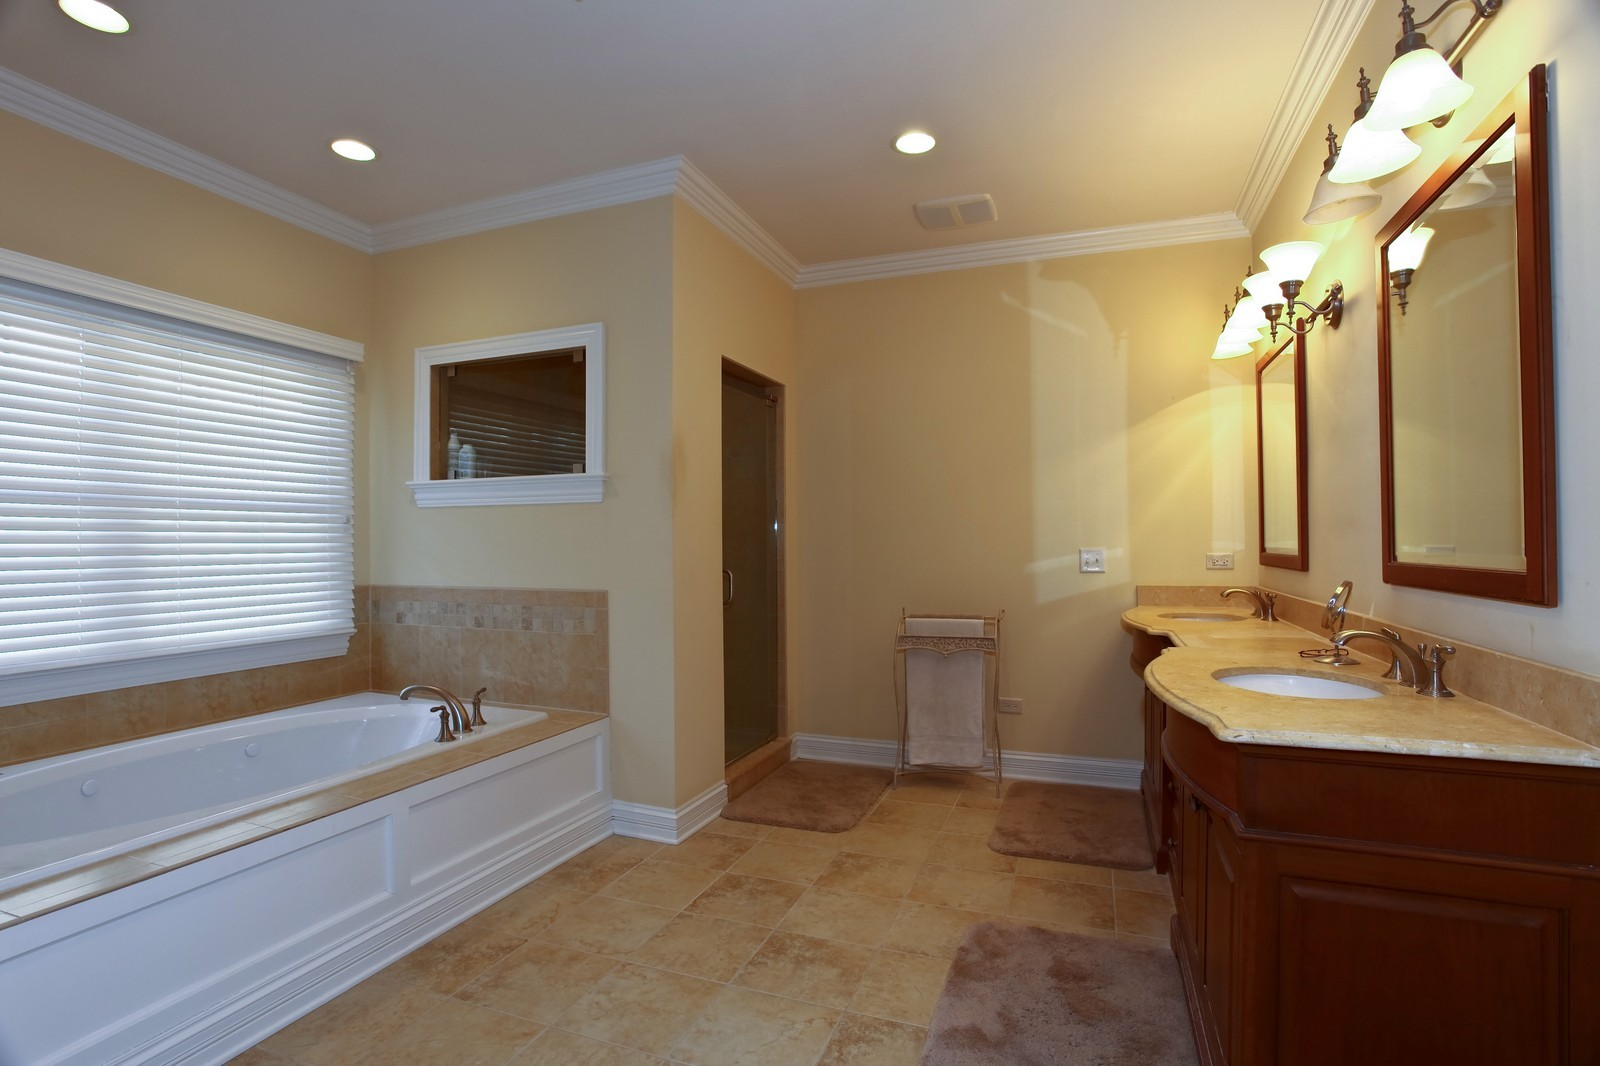 Real Estate Photography - 663 N Webster Street, Naperville, IL, 60563 - Master Bathroom